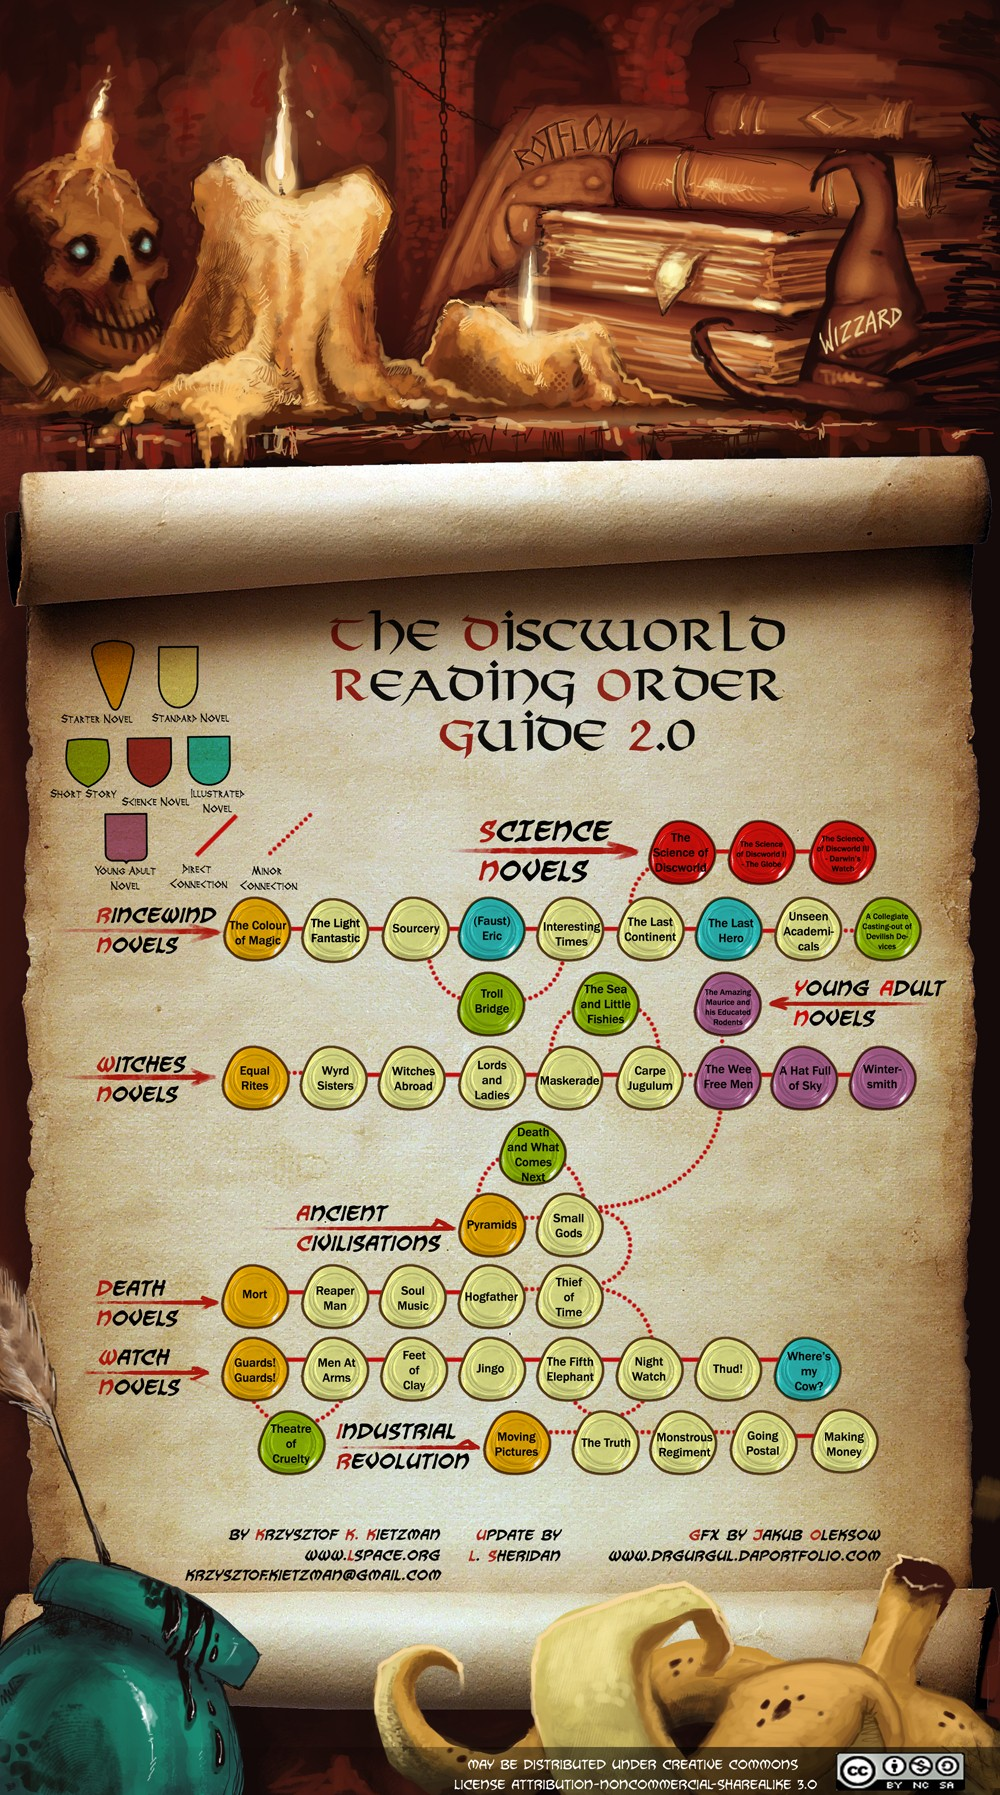 The Discworld series by the late Sir Terry Pratchett. They are fantastic books, very funny, thought provoking, and well written. There are multiple story lines to choose from if you wish to read them. Here is a good resource to get you on the right track.  Edit: Also /r/discworld